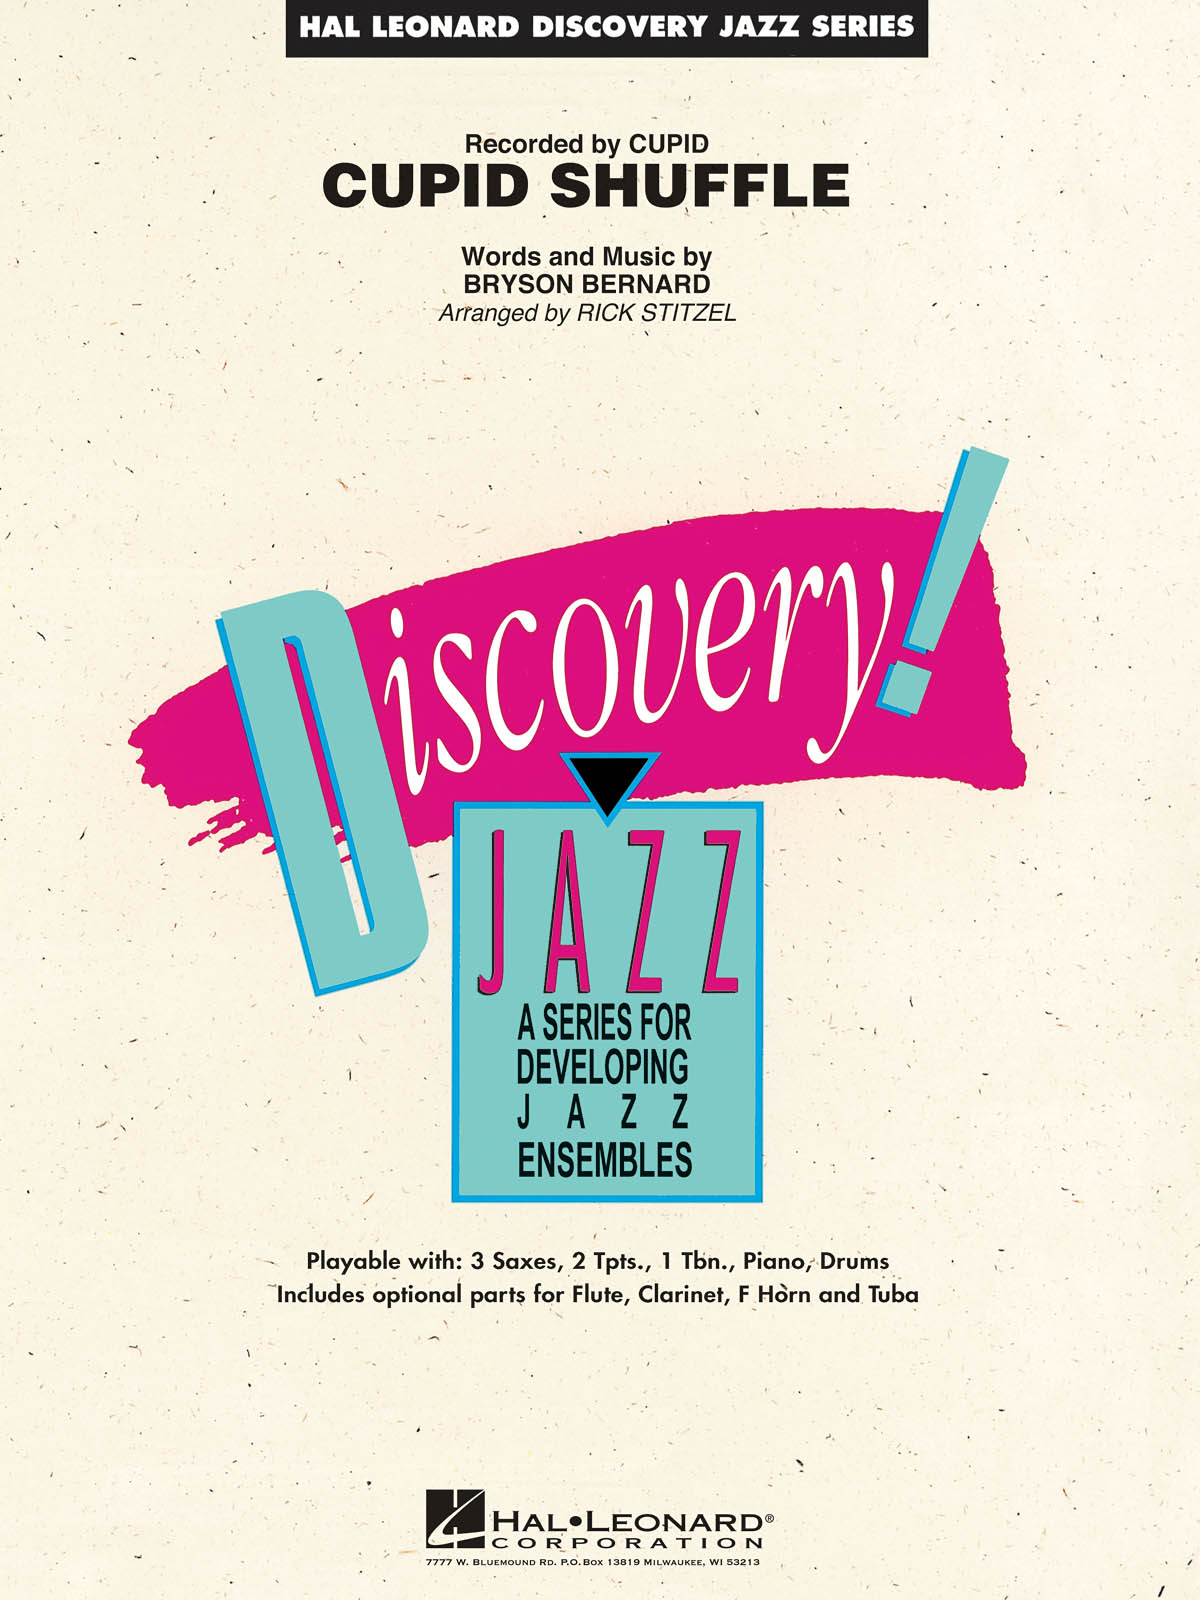 Cupid Shuffle: Discovery Jazz